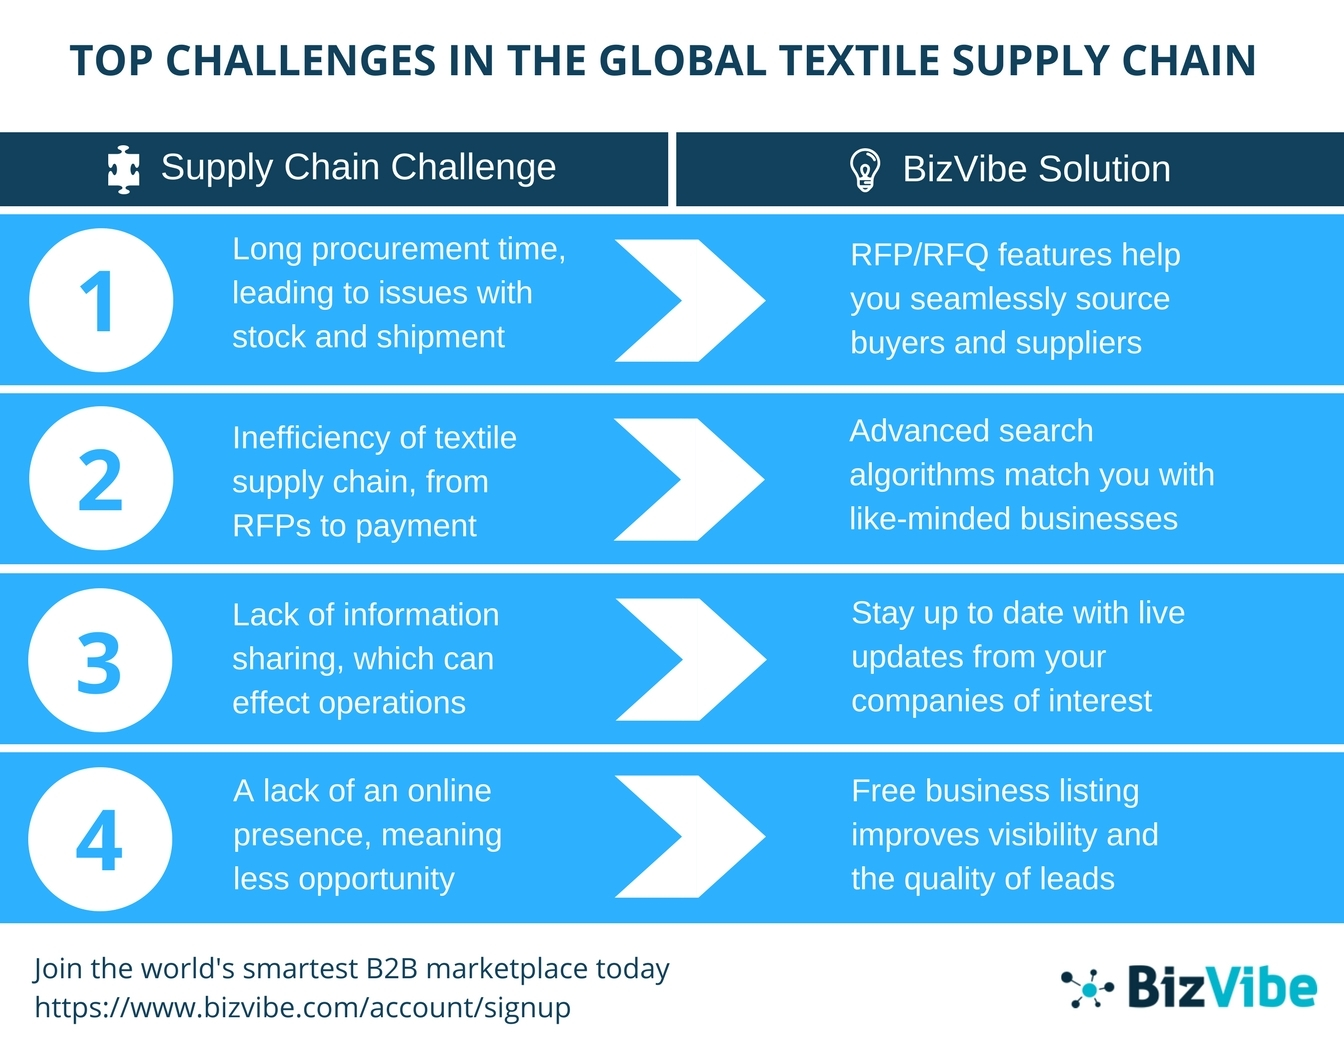 Top textile supply chain challenges from BizVibe. (Graphic: Business Wire)